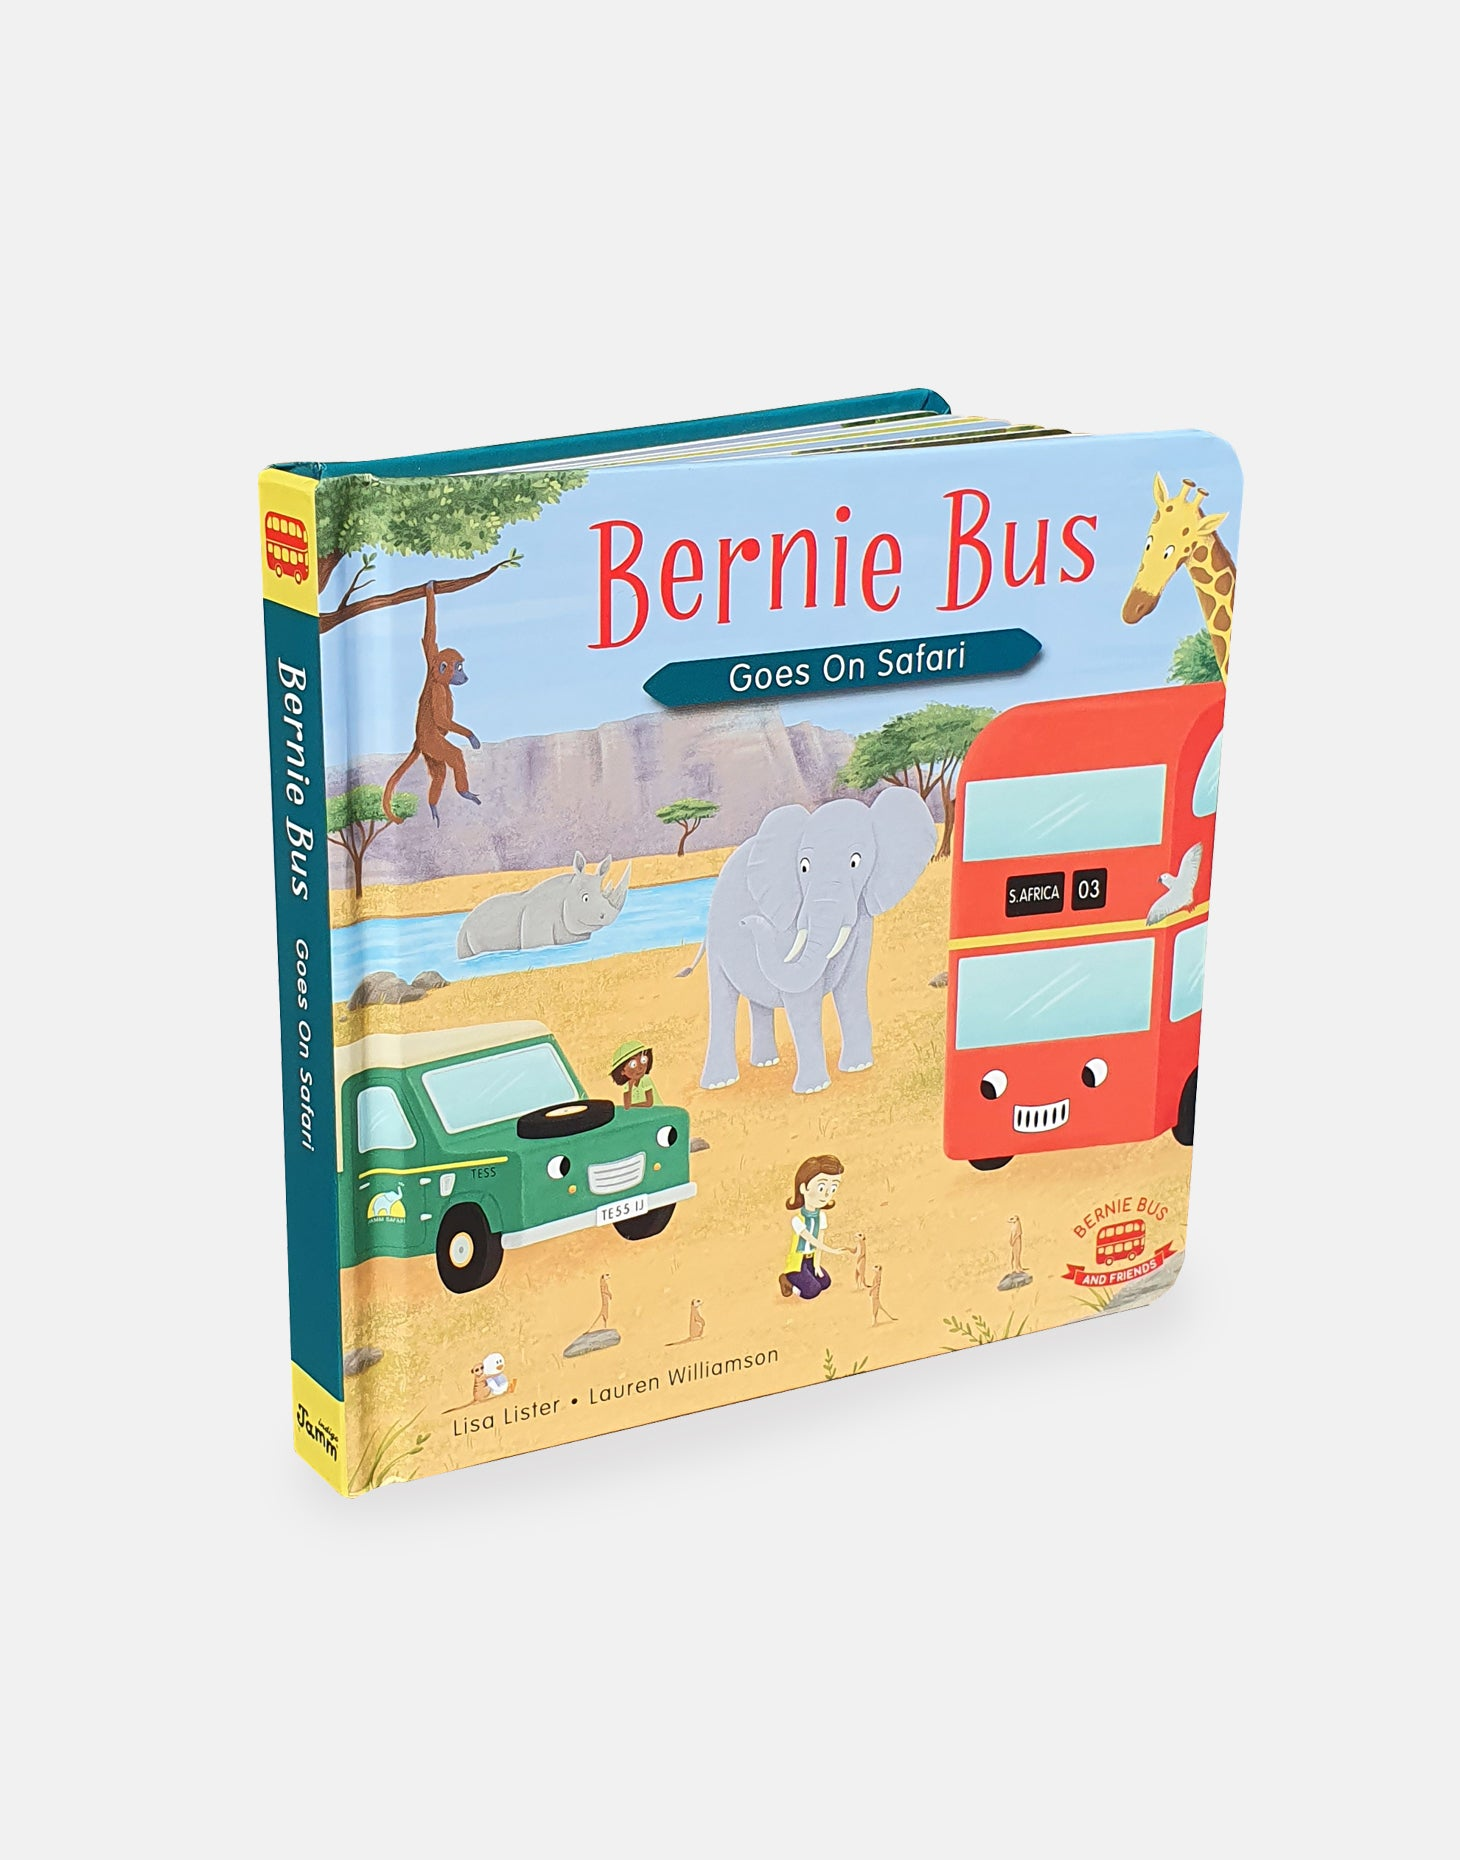 Bernie Bus goes on Safari